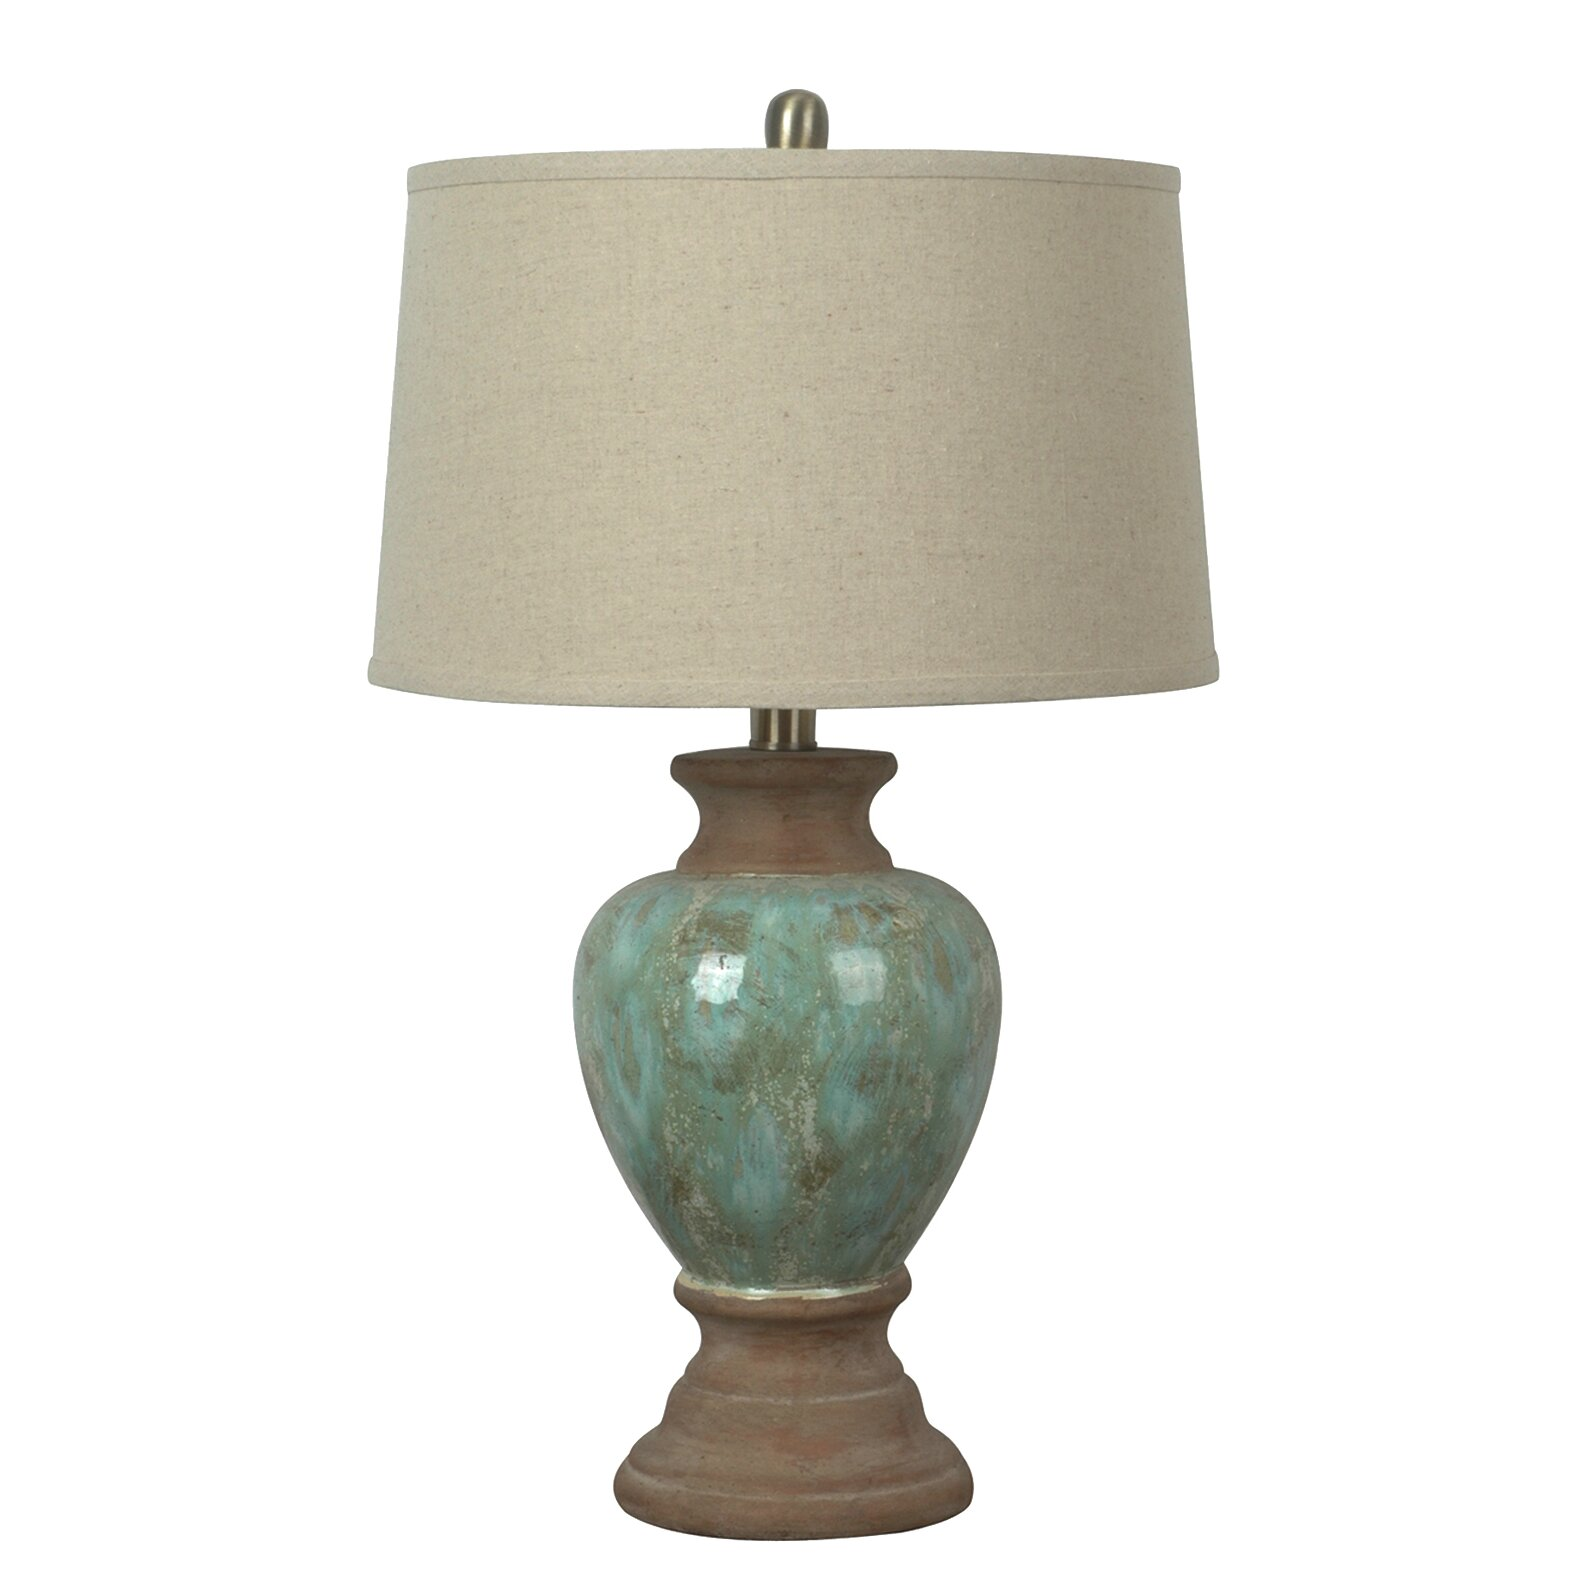 "Wayfair Lights: Crestview Leona 28.25"" Table Lamp & Reviews"